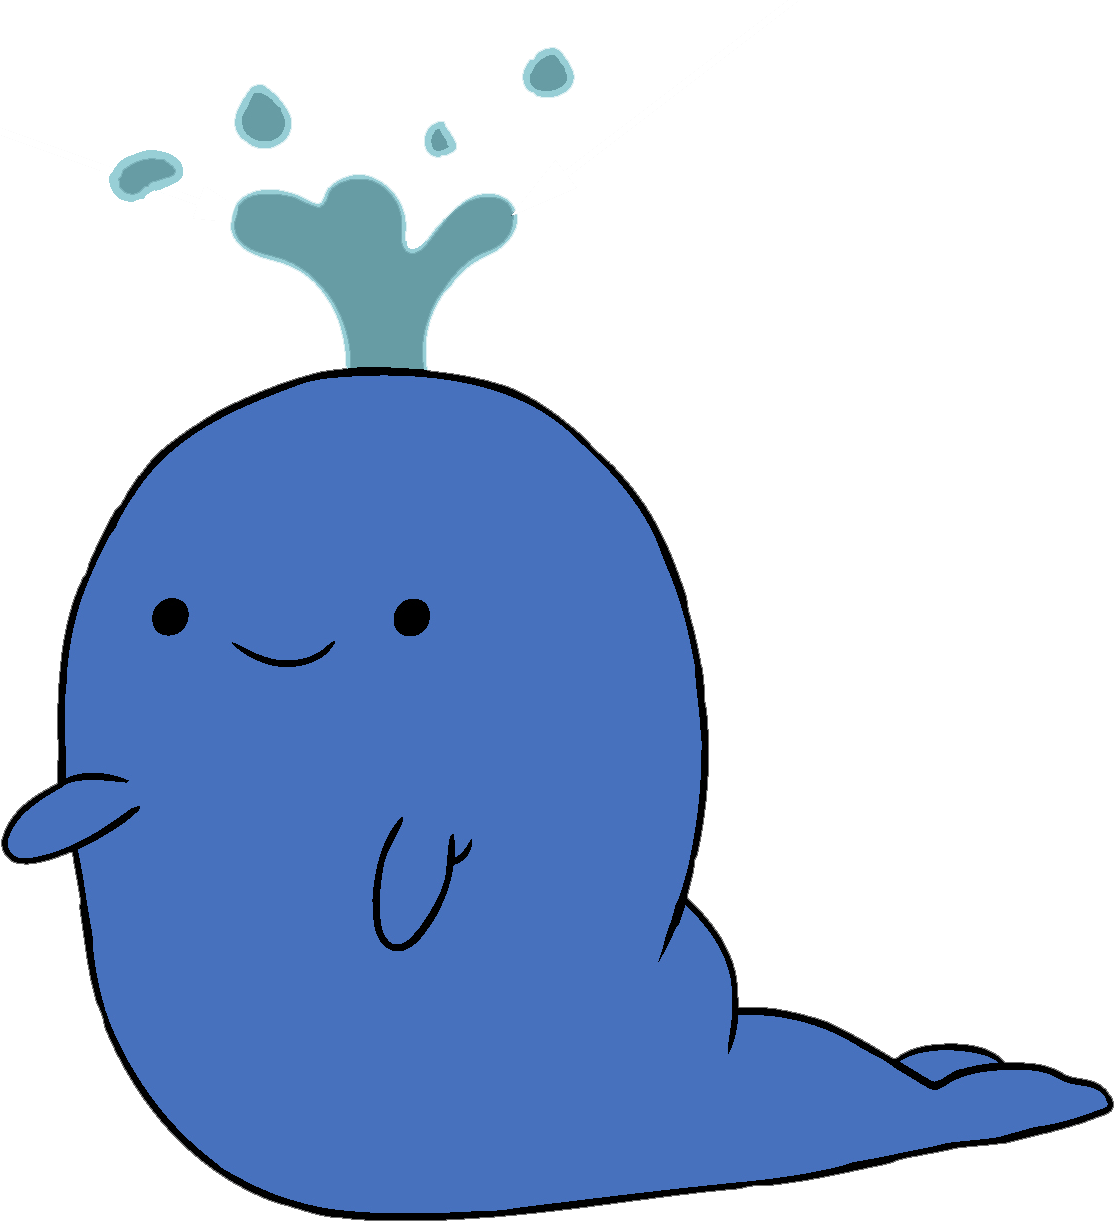 Image whale png adventure. Memories clipart transparent